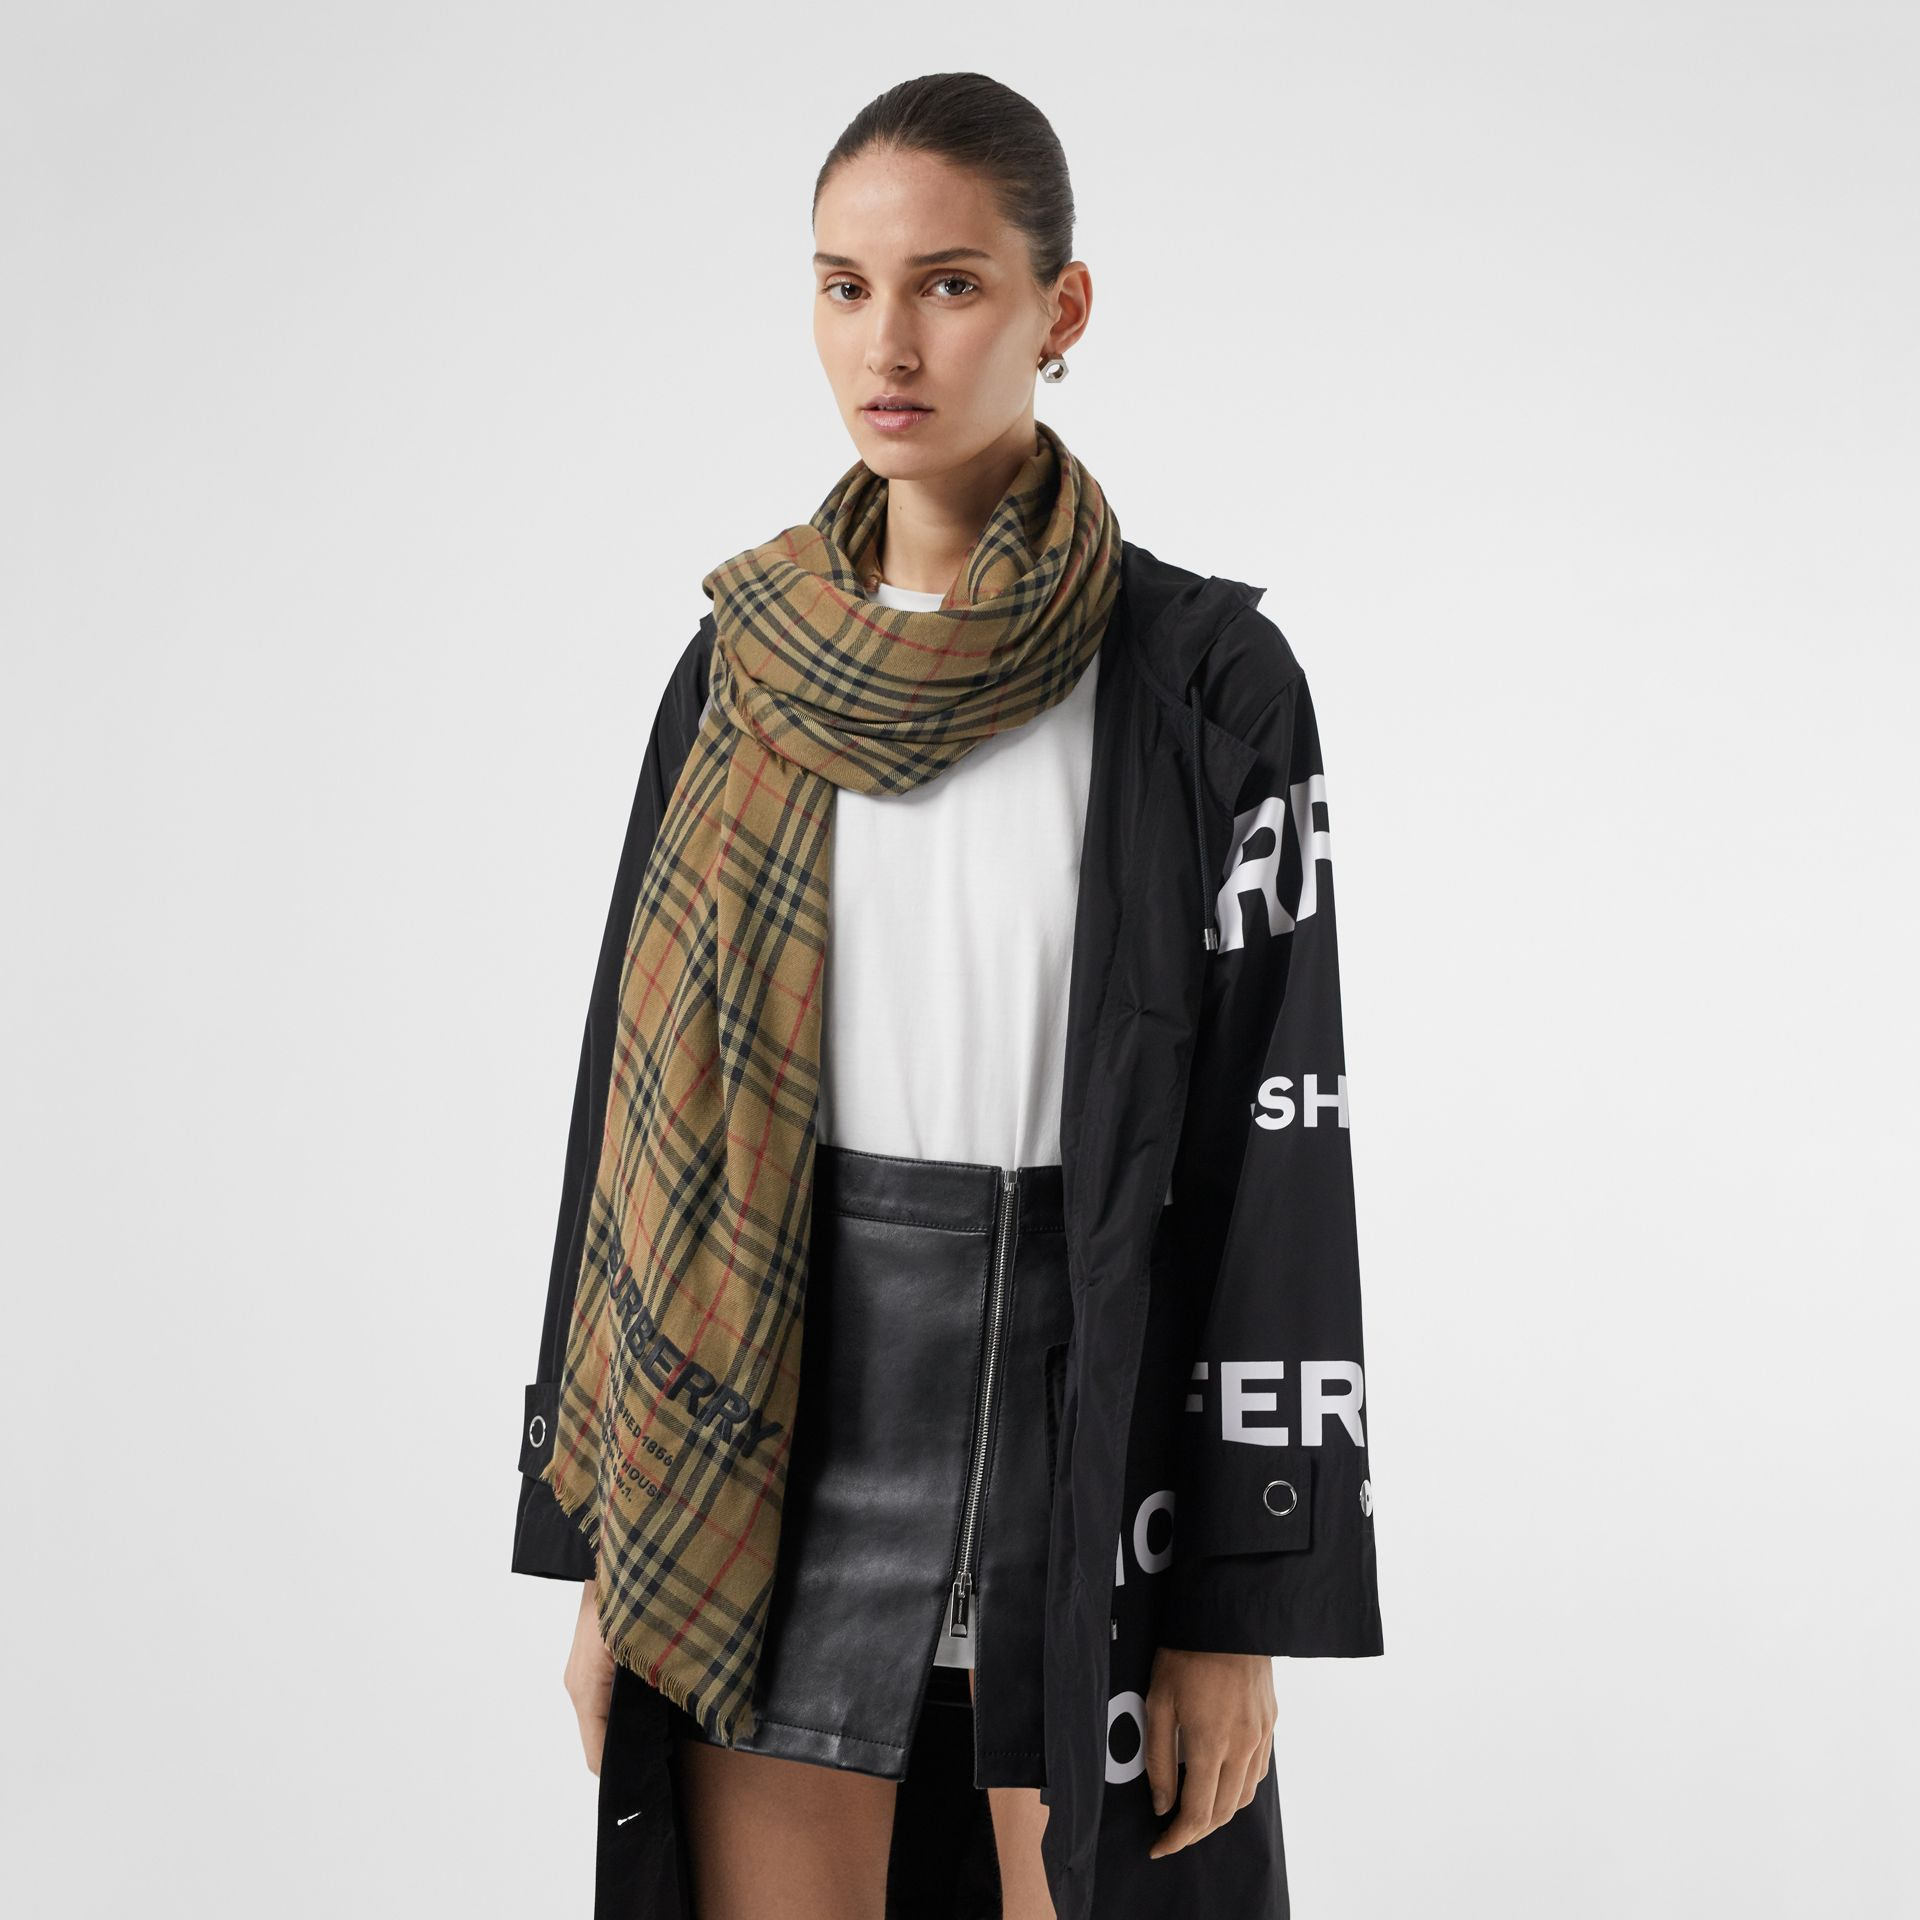 Embroidered Vintage Check Lightweight Cashmere Scarf in Olive Green | Burberry - gallery image 2